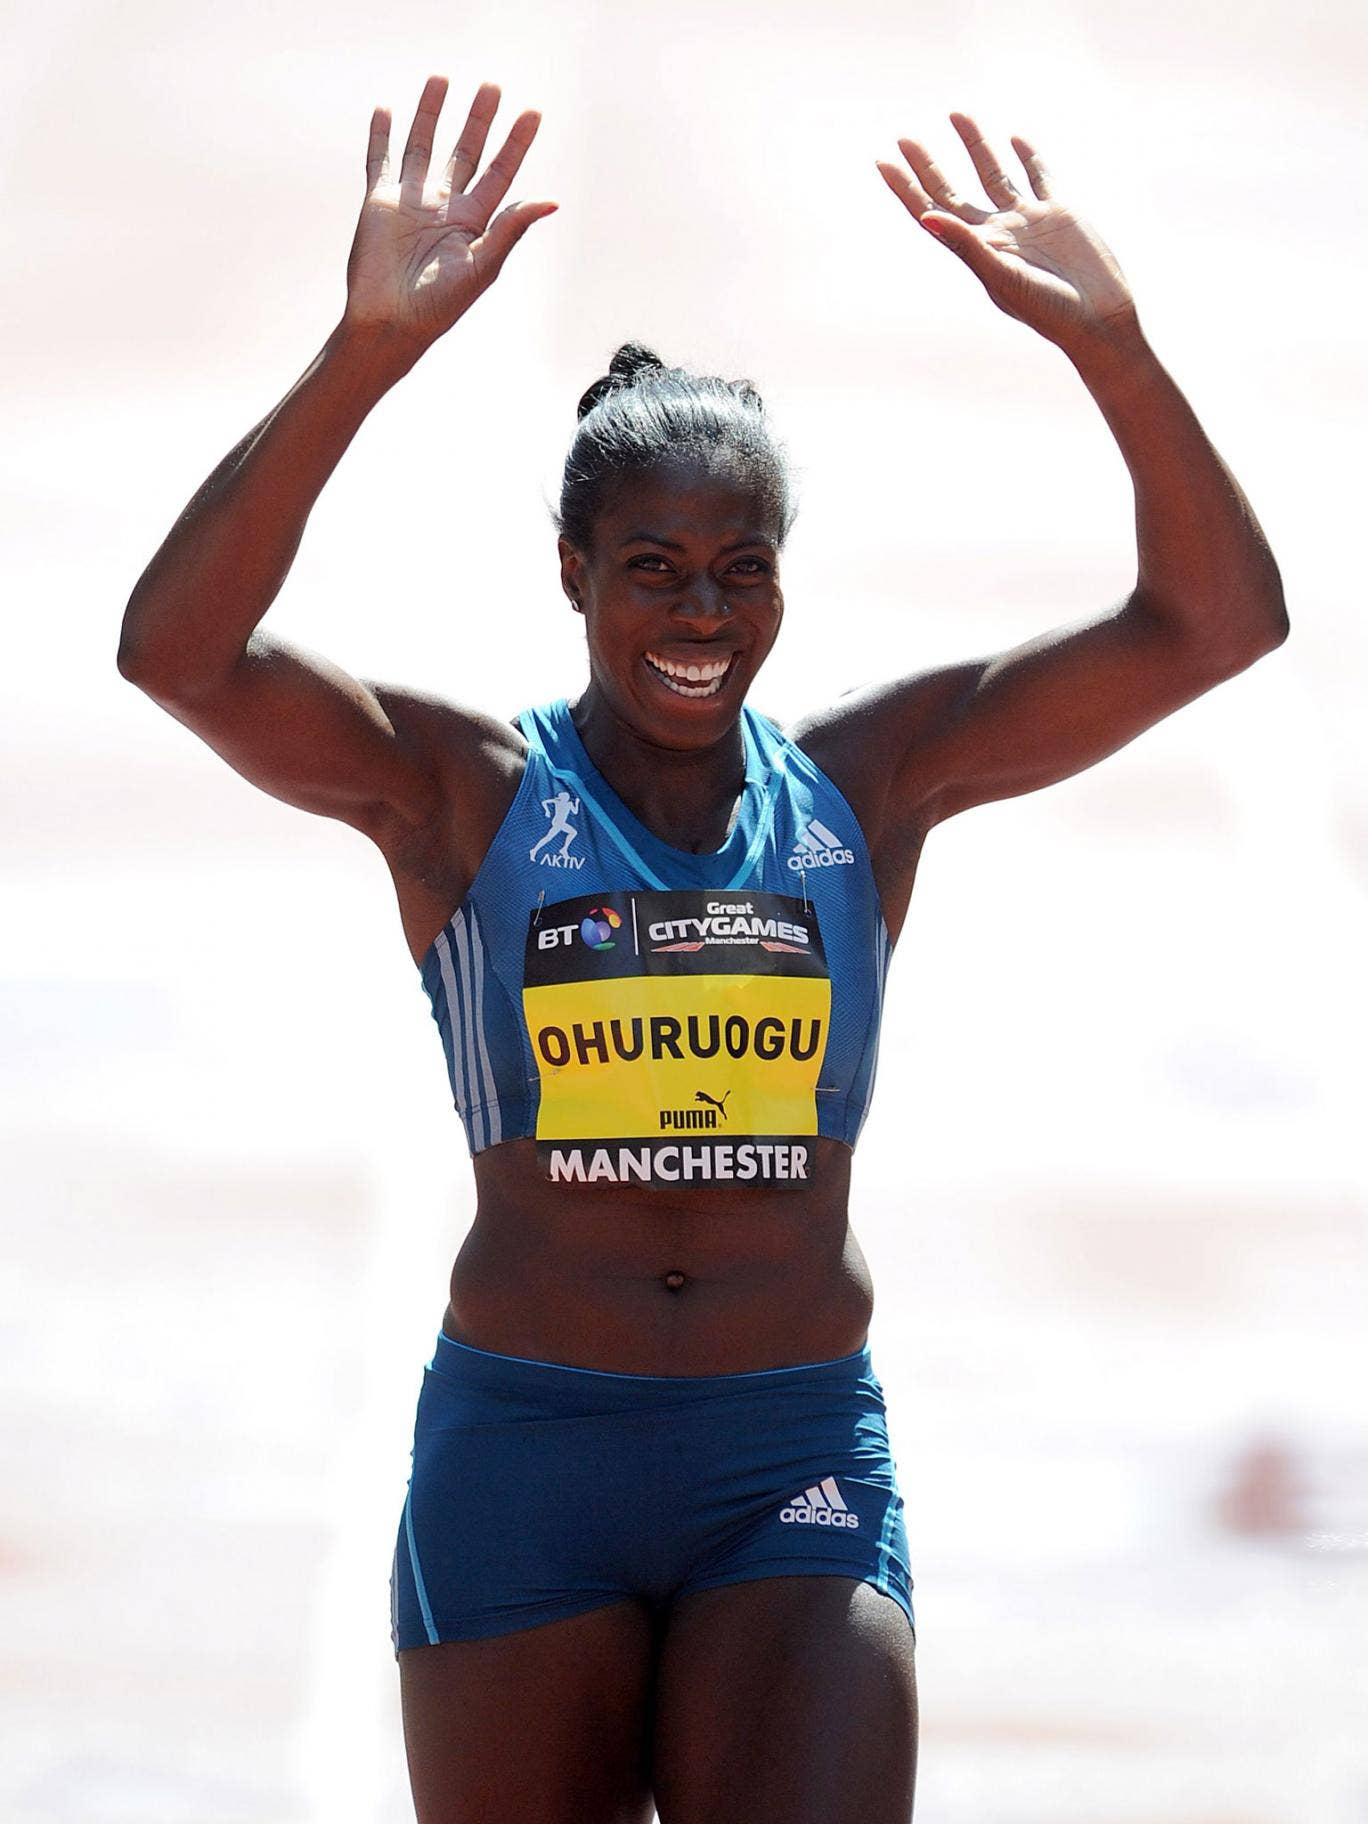 Christine Ohuruogu will focus on the Worlds and Olympics